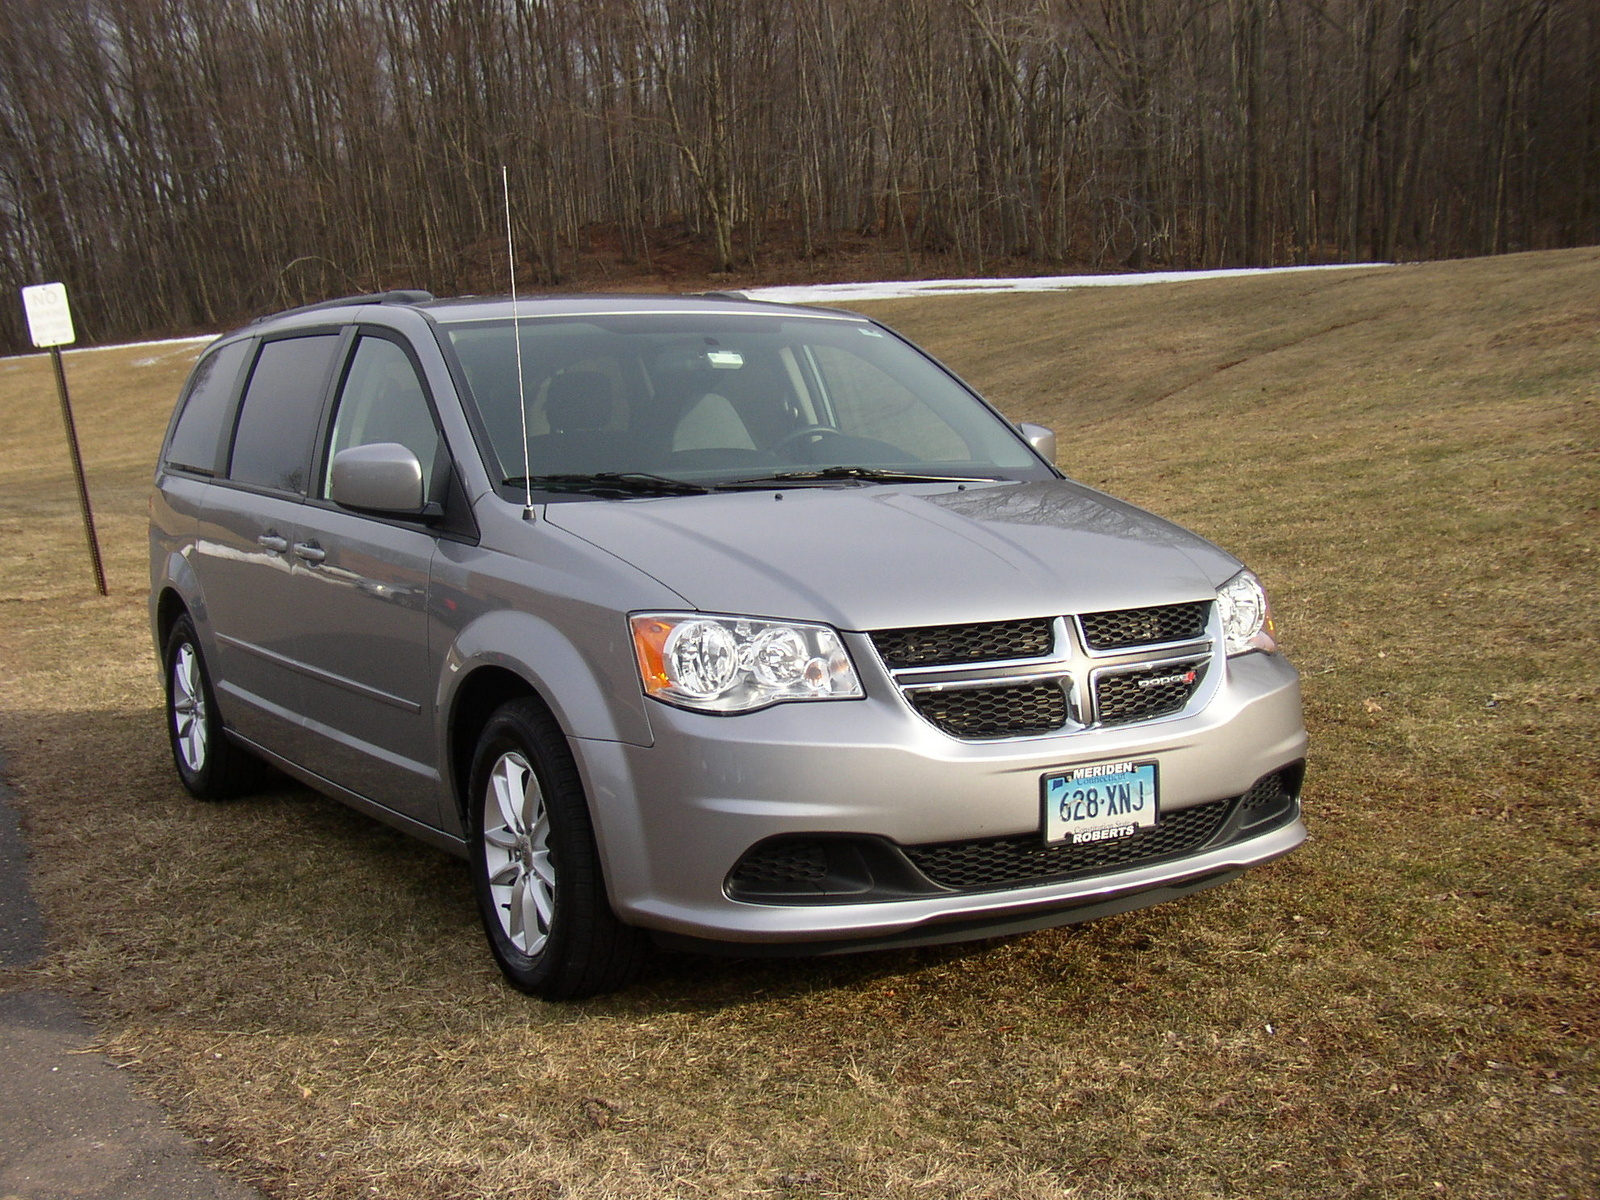 2014 dodge grand caravan pictures cargurus. Black Bedroom Furniture Sets. Home Design Ideas